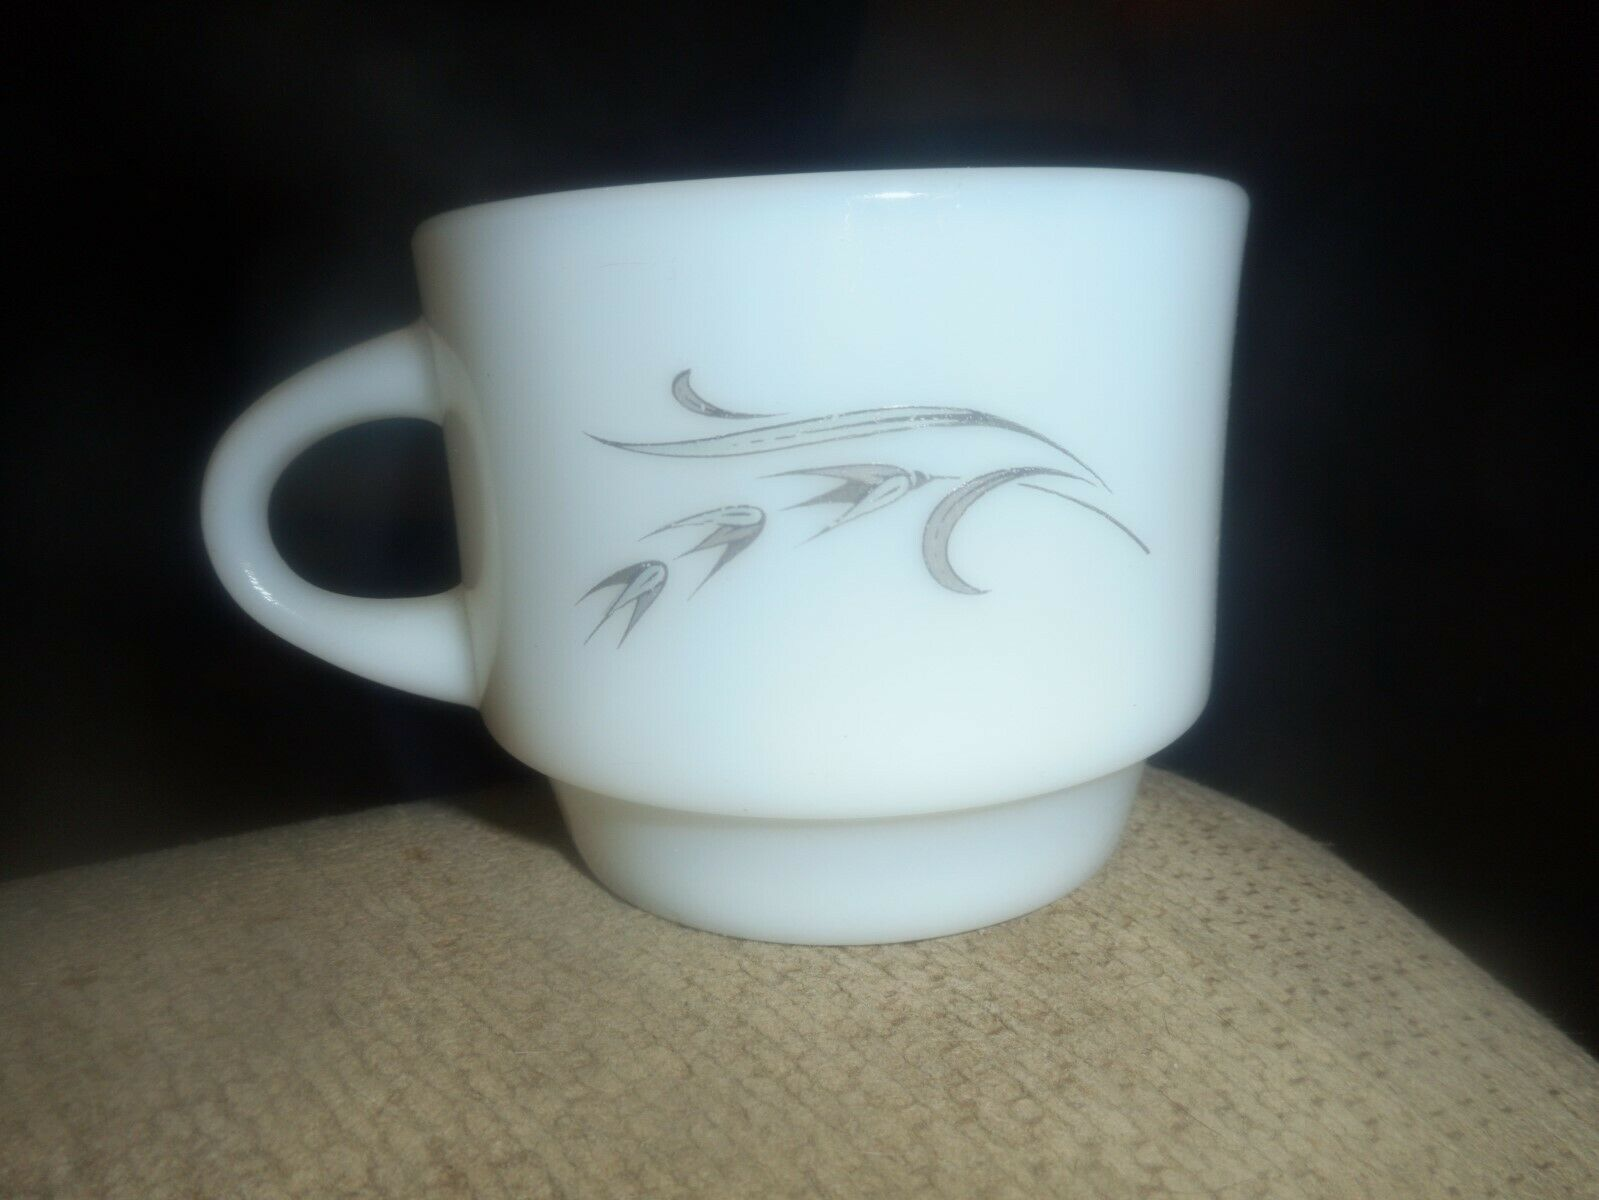 Primary image for Vtg Mid Century Anchor Hocking Oven Proof Dinnerware Silver Wheat Coffee Tea Cup